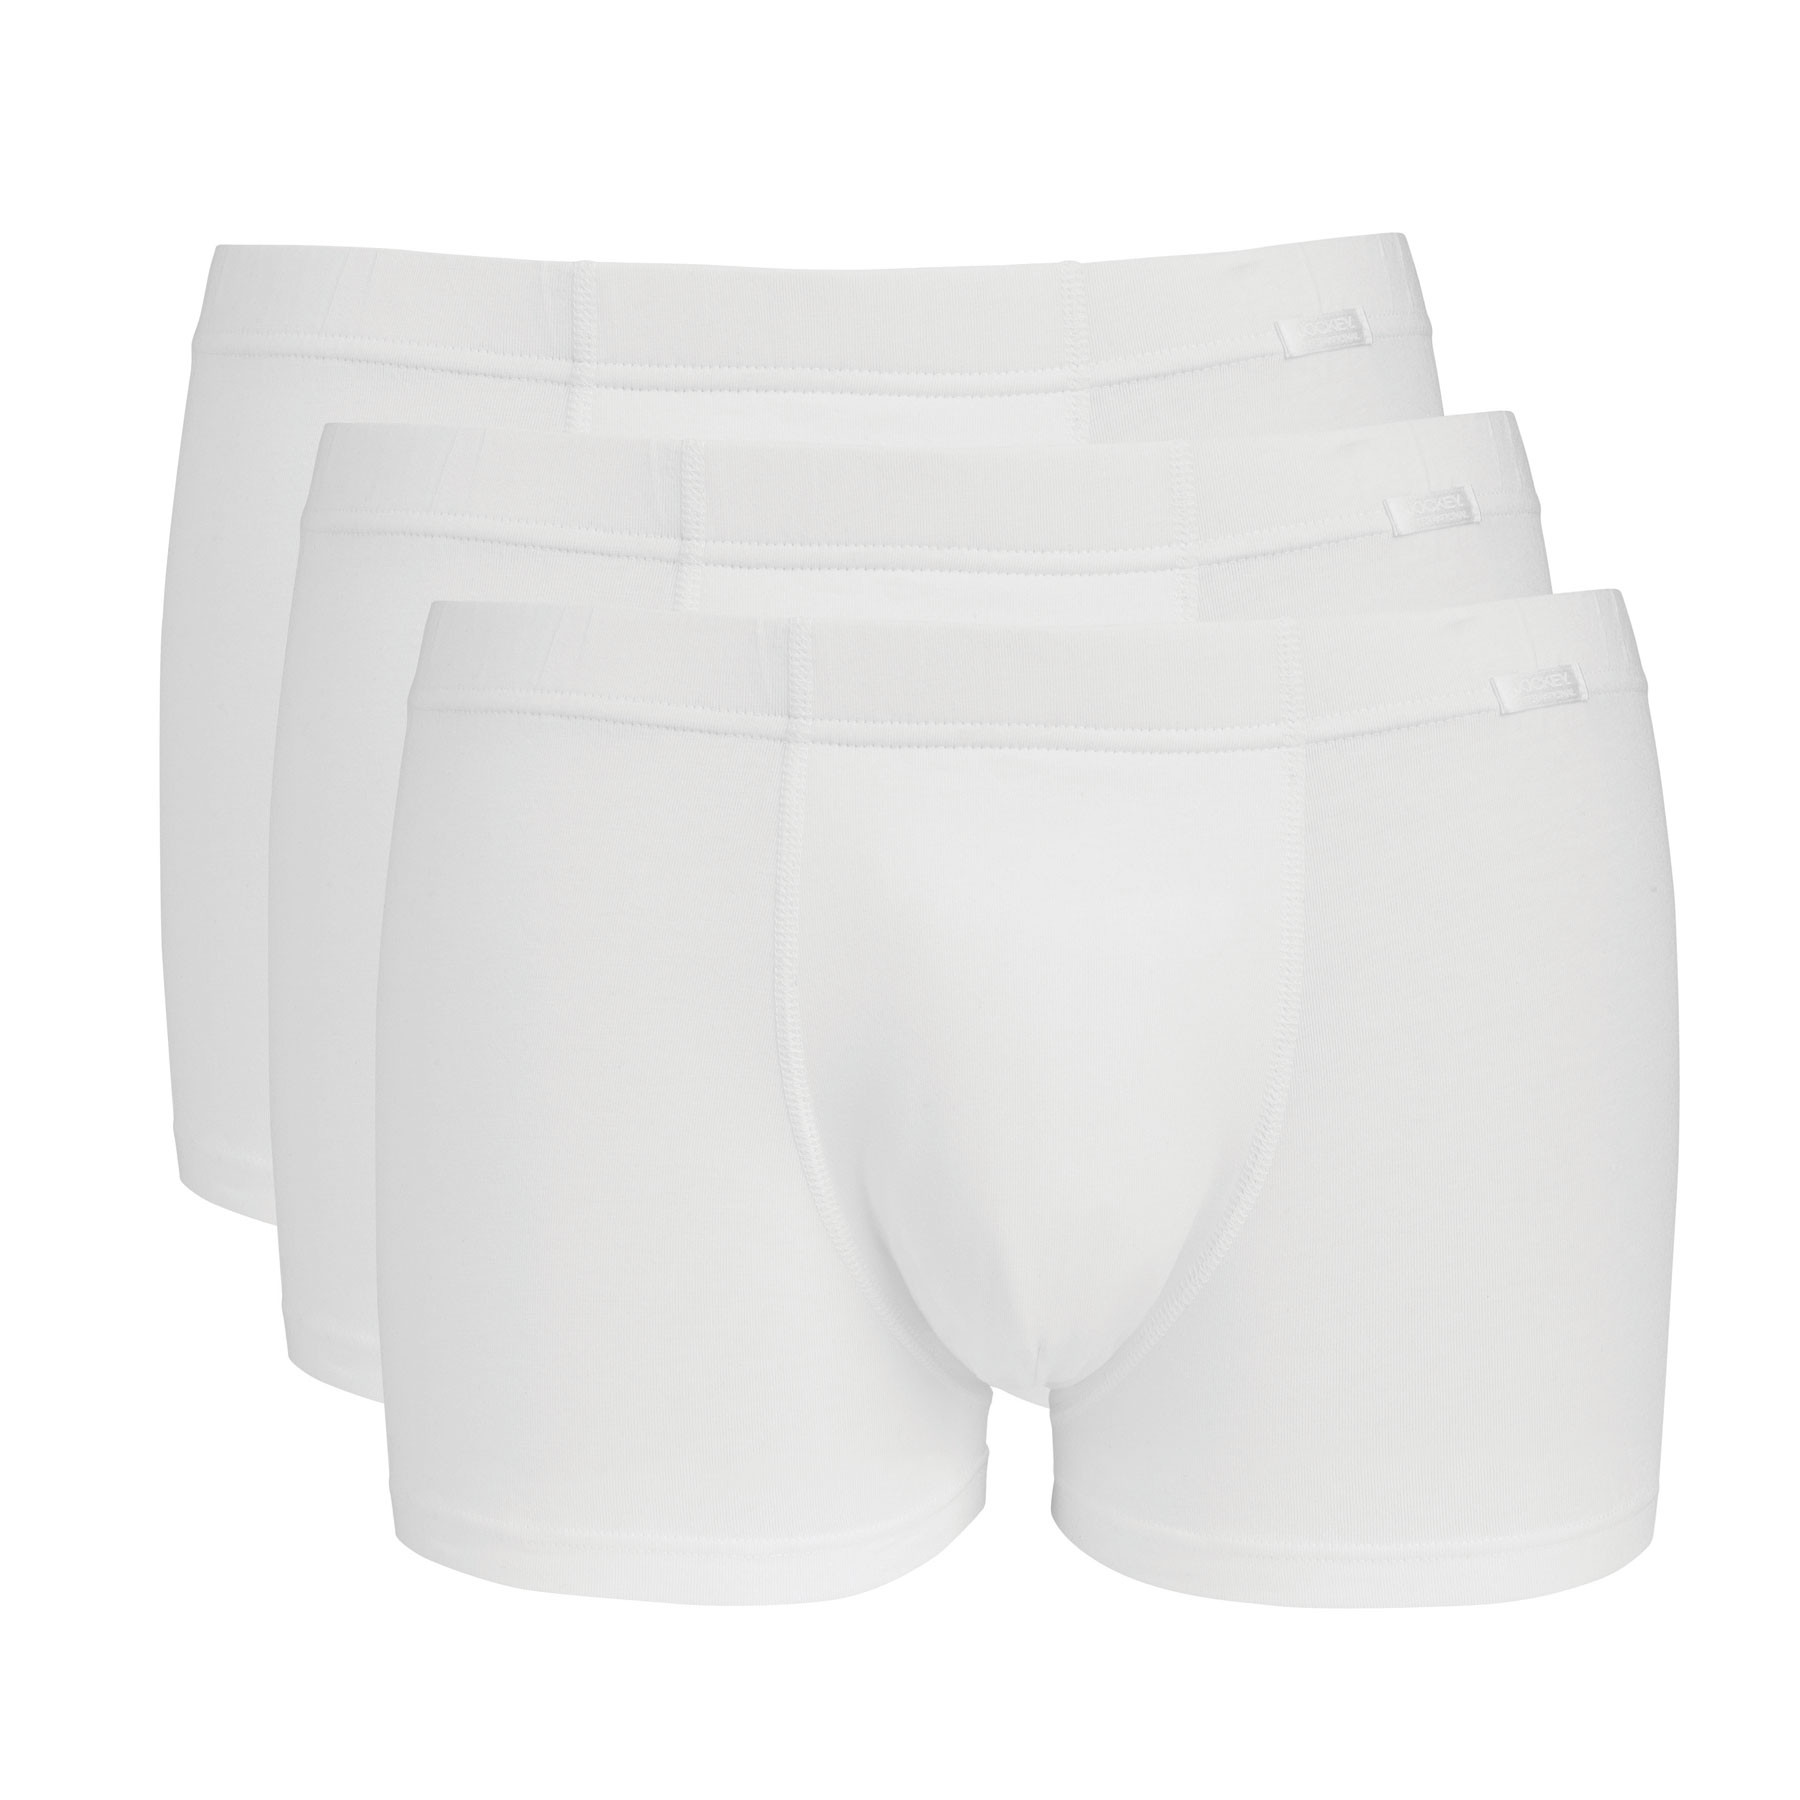 Mens-Jockey-Designer-Cotton-Lycell-Stretch-Boxer-Long-Trunk-Underwear-3-pack